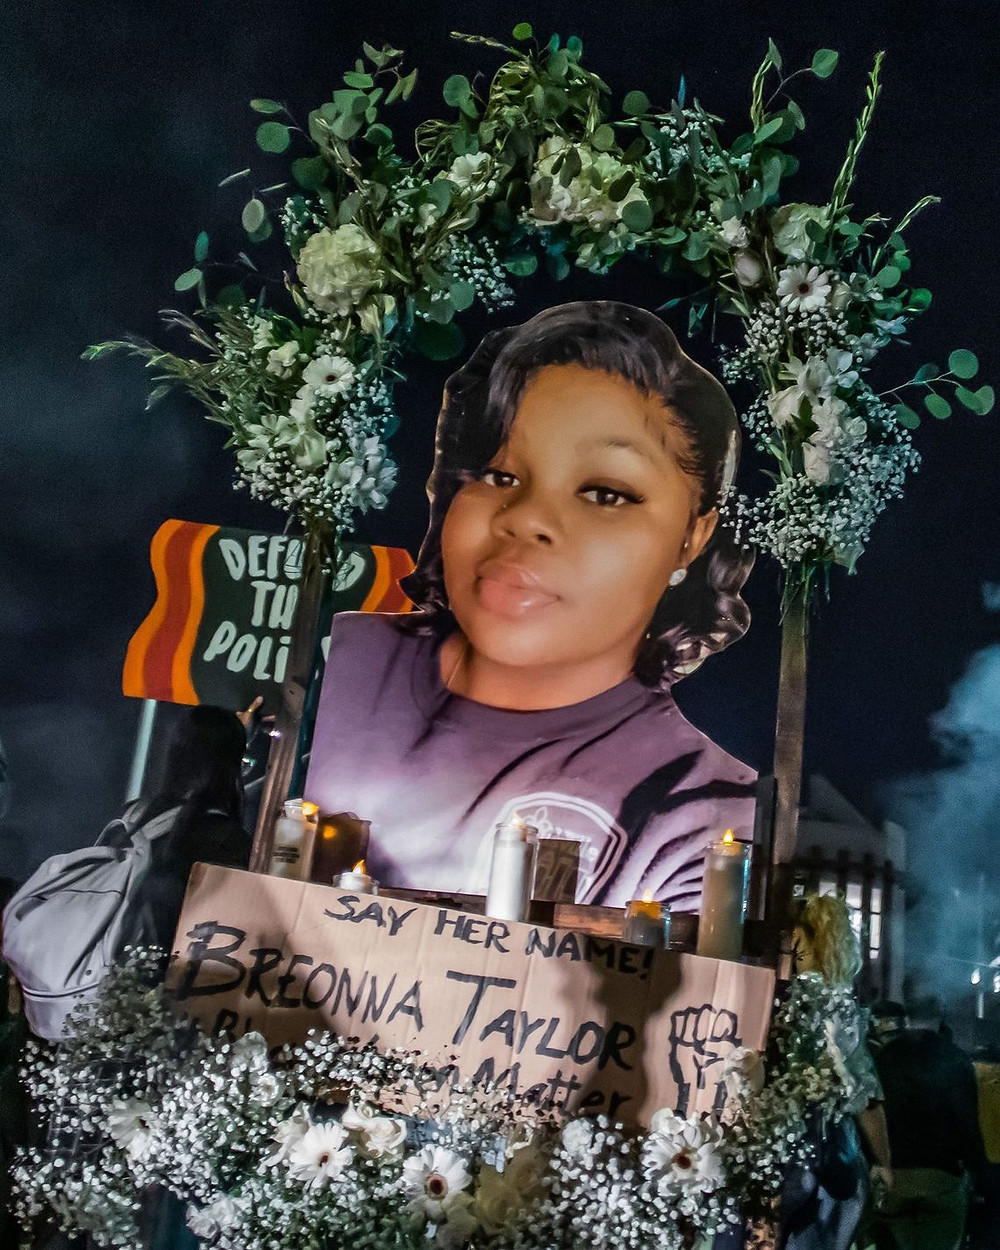 Memorial for Breonna Taylor, victim of police brutality.